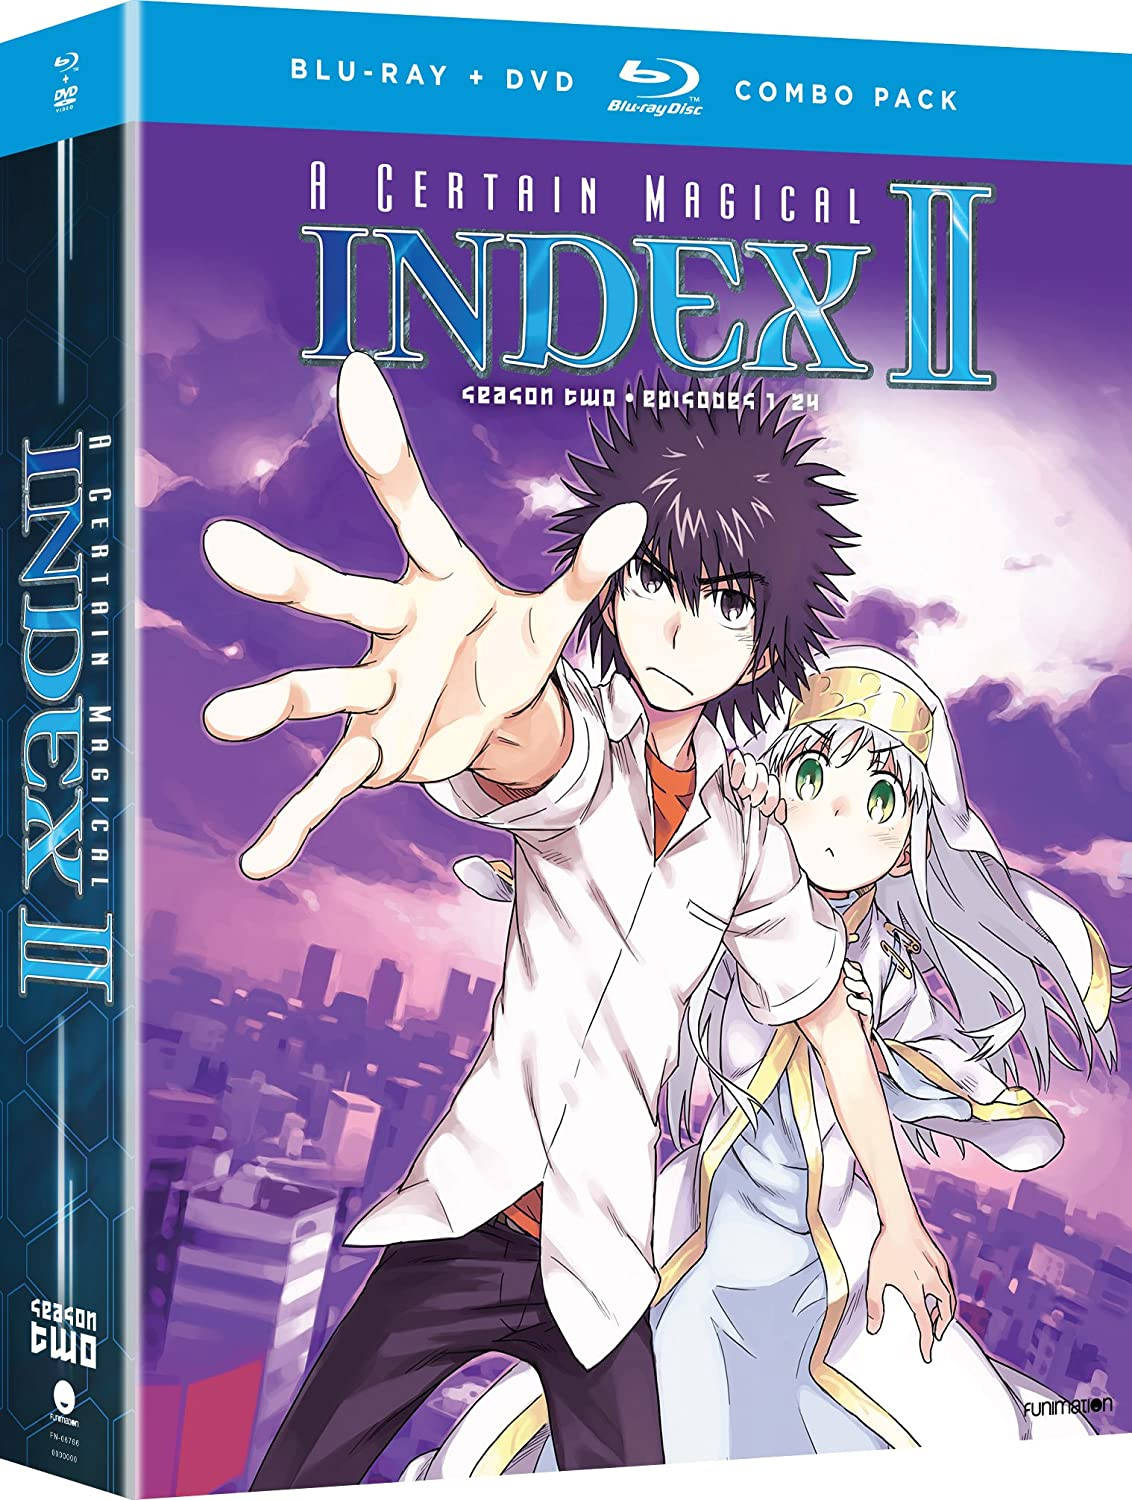 A Certain Magical Index Season 2 Blu-ray/DVD (Dual Audio)